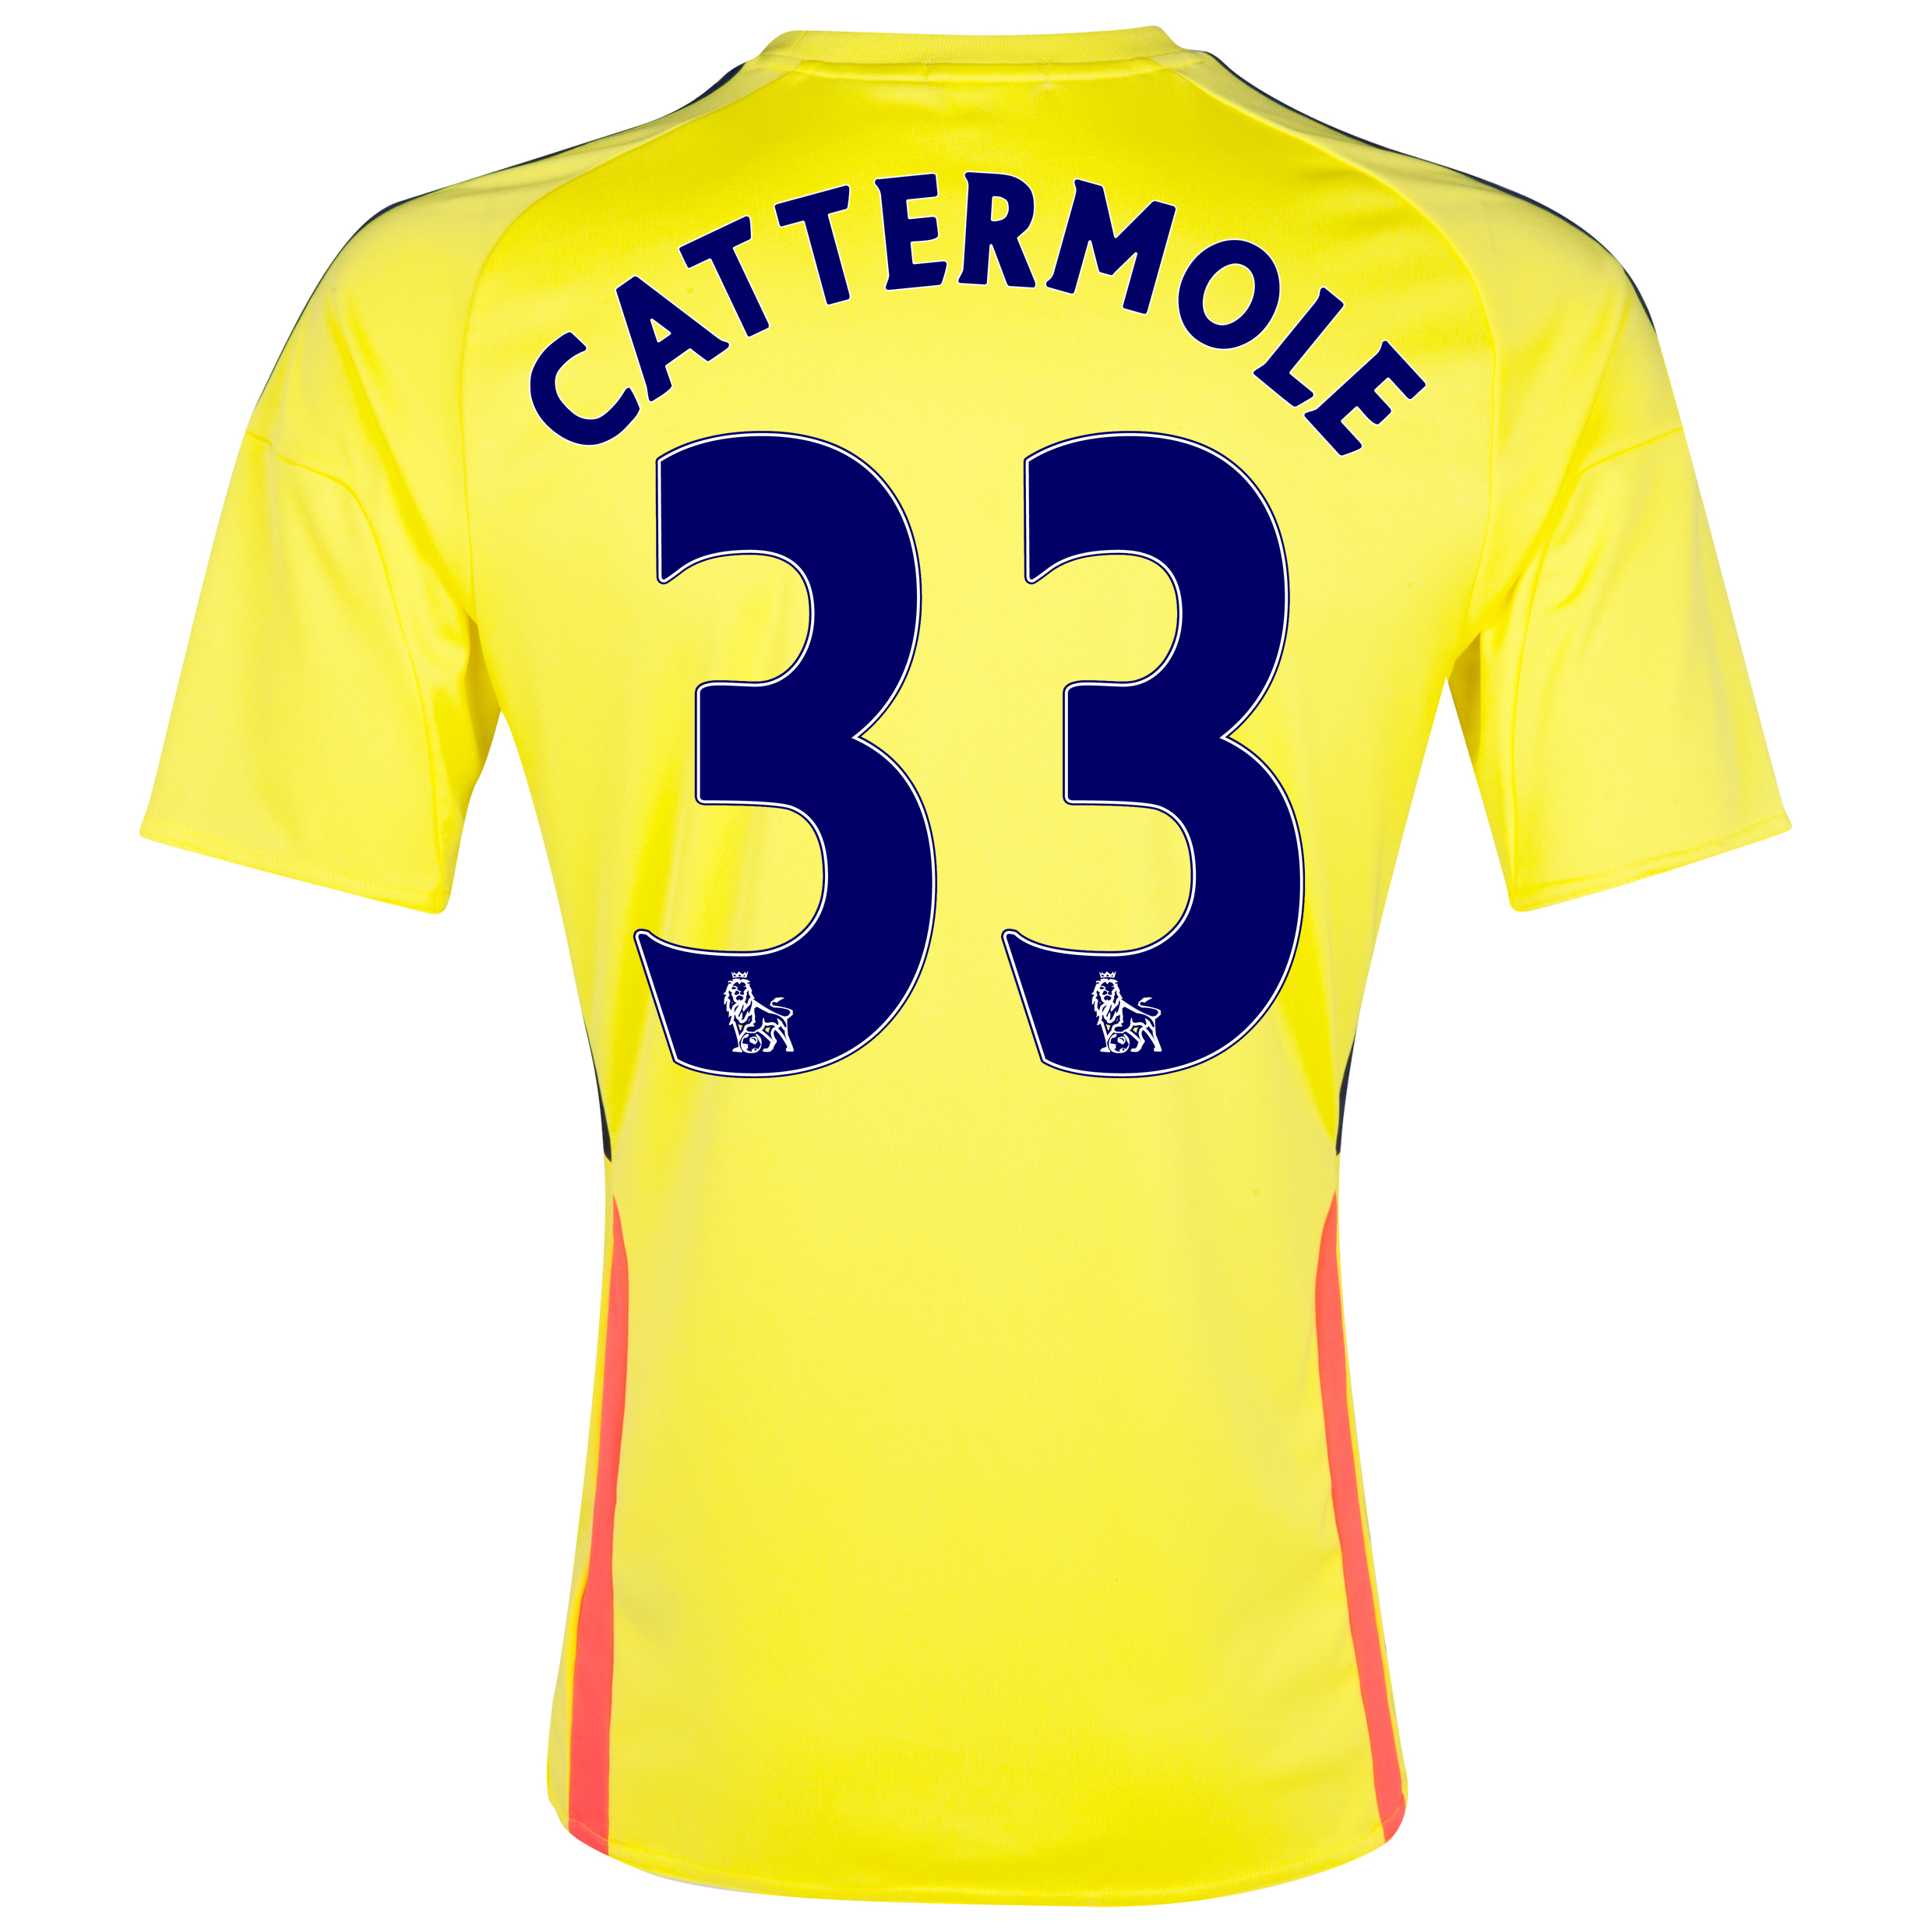 Sunderland Away Shirt 2013/14 with Cattermole 33 printing